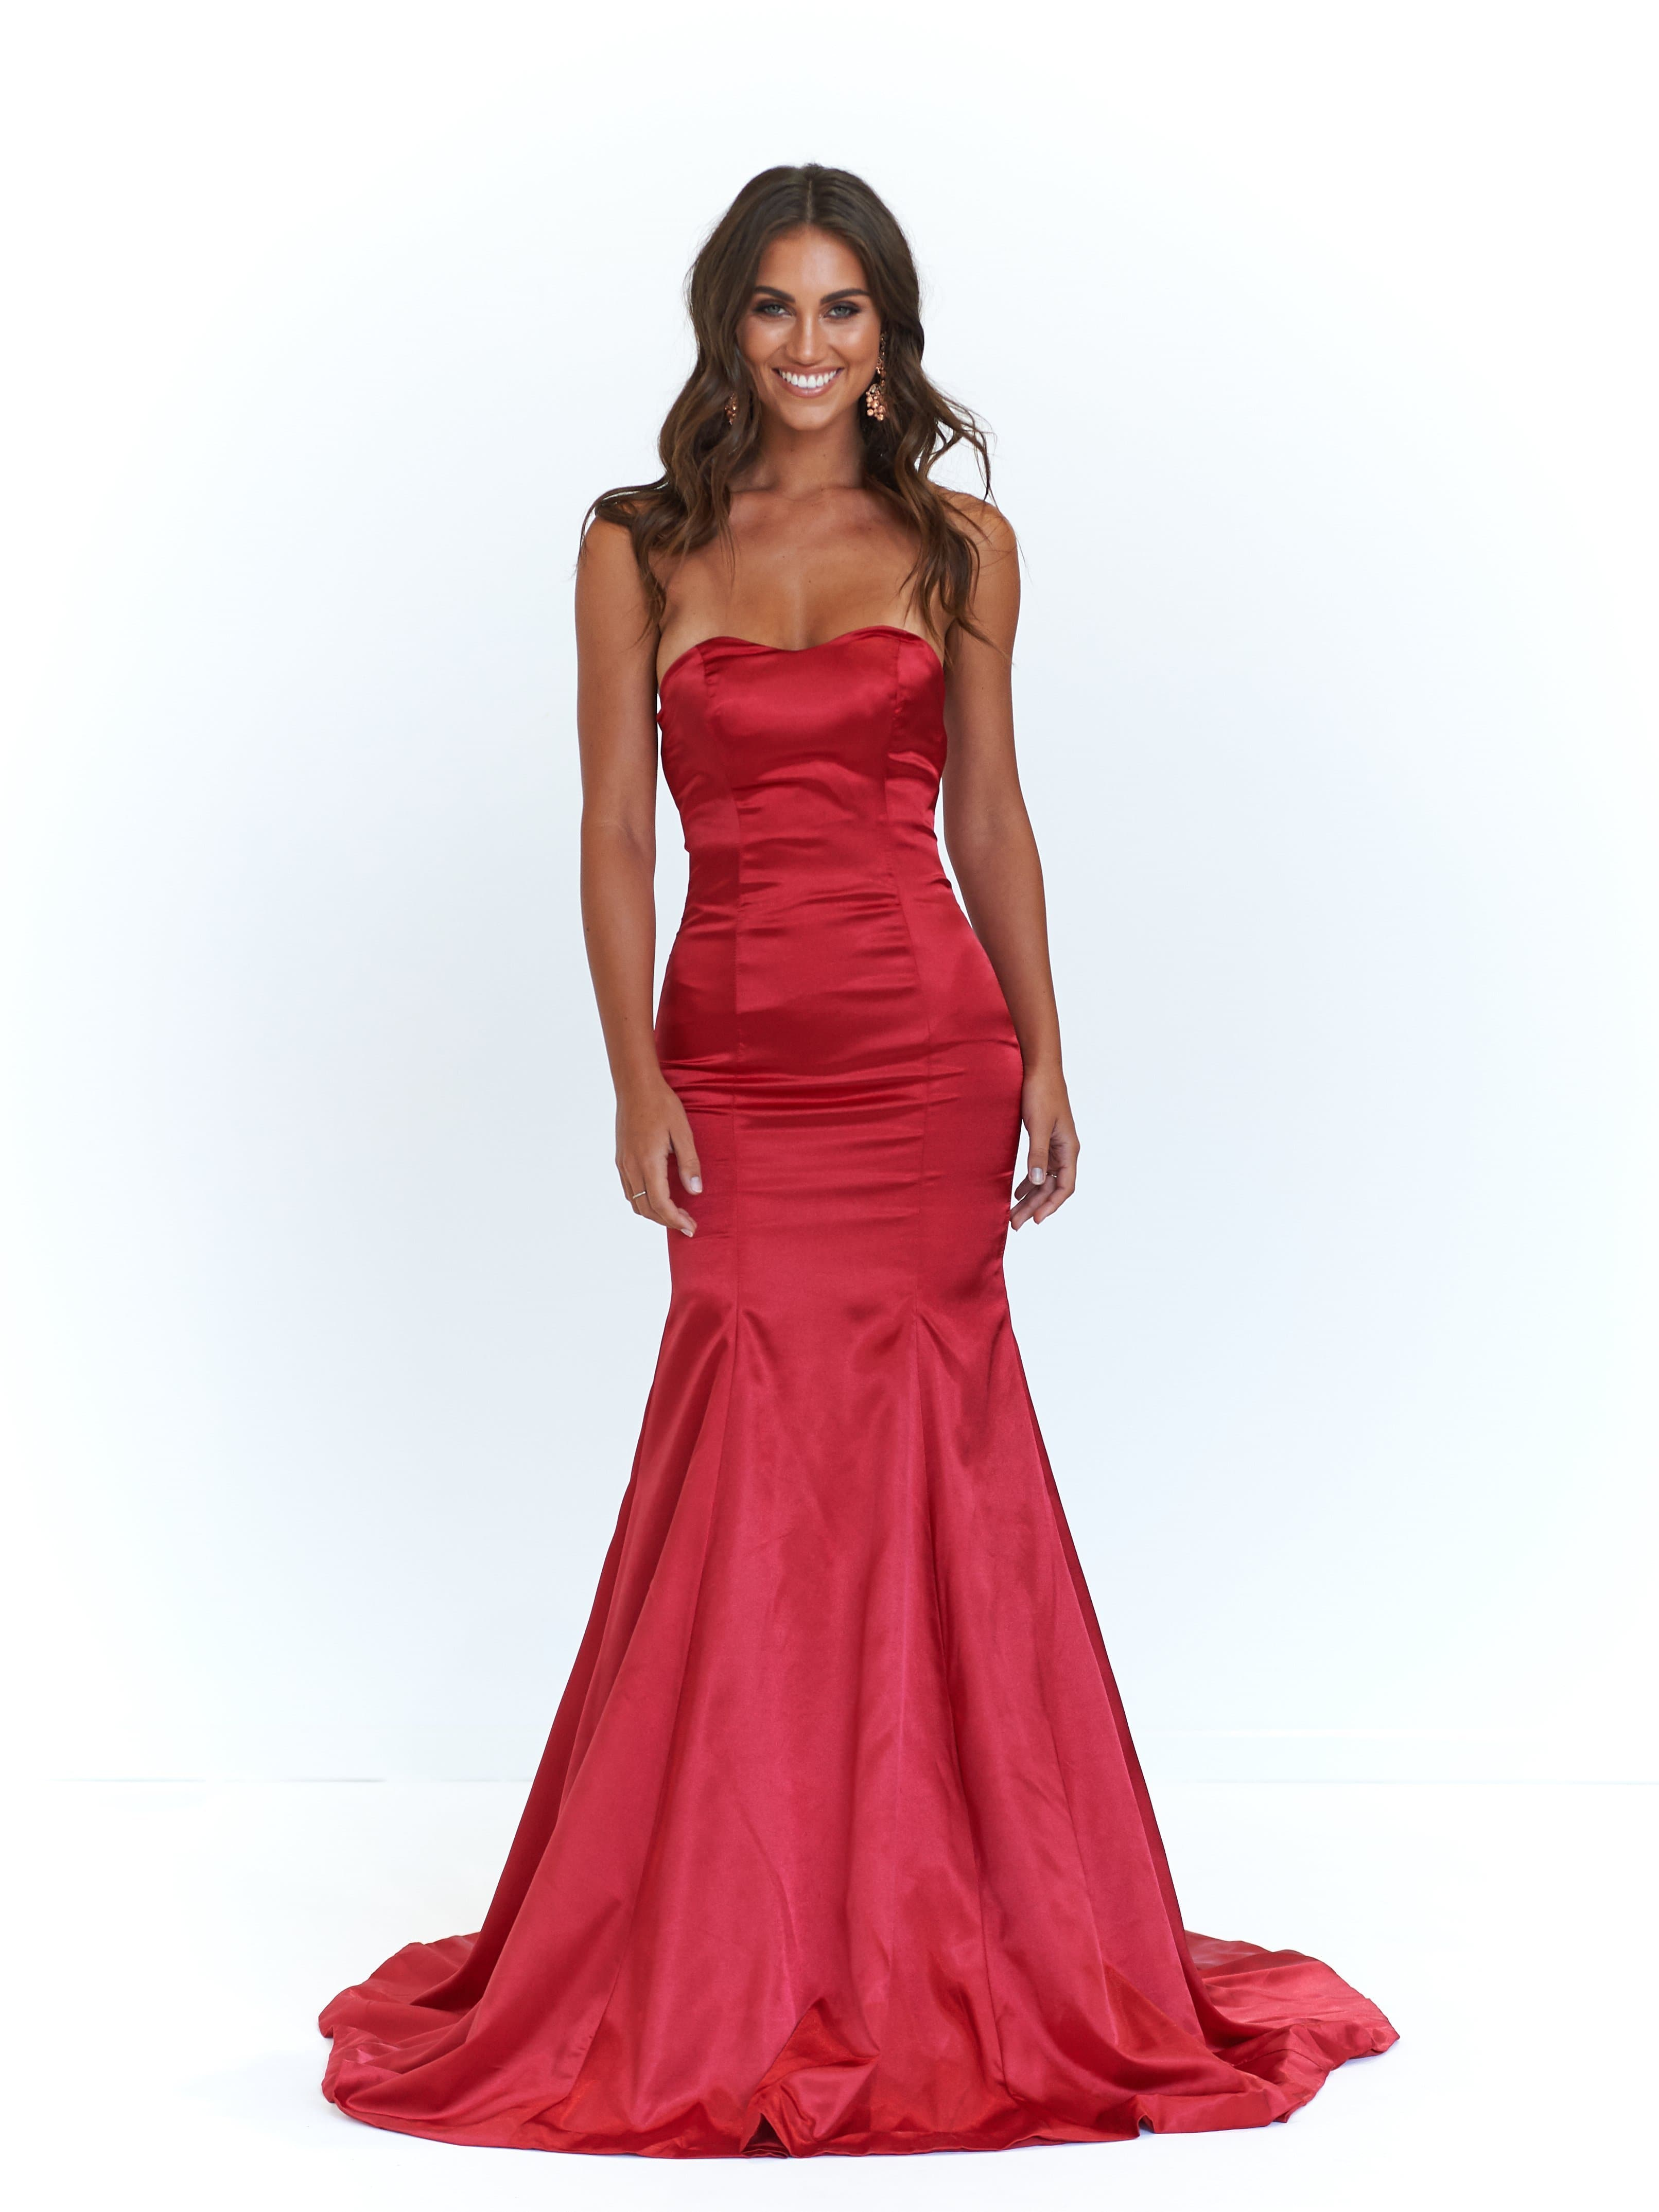 A&N Sonika - Deep Red Strapless Satin Gown with Mermaid Train – A&N ...